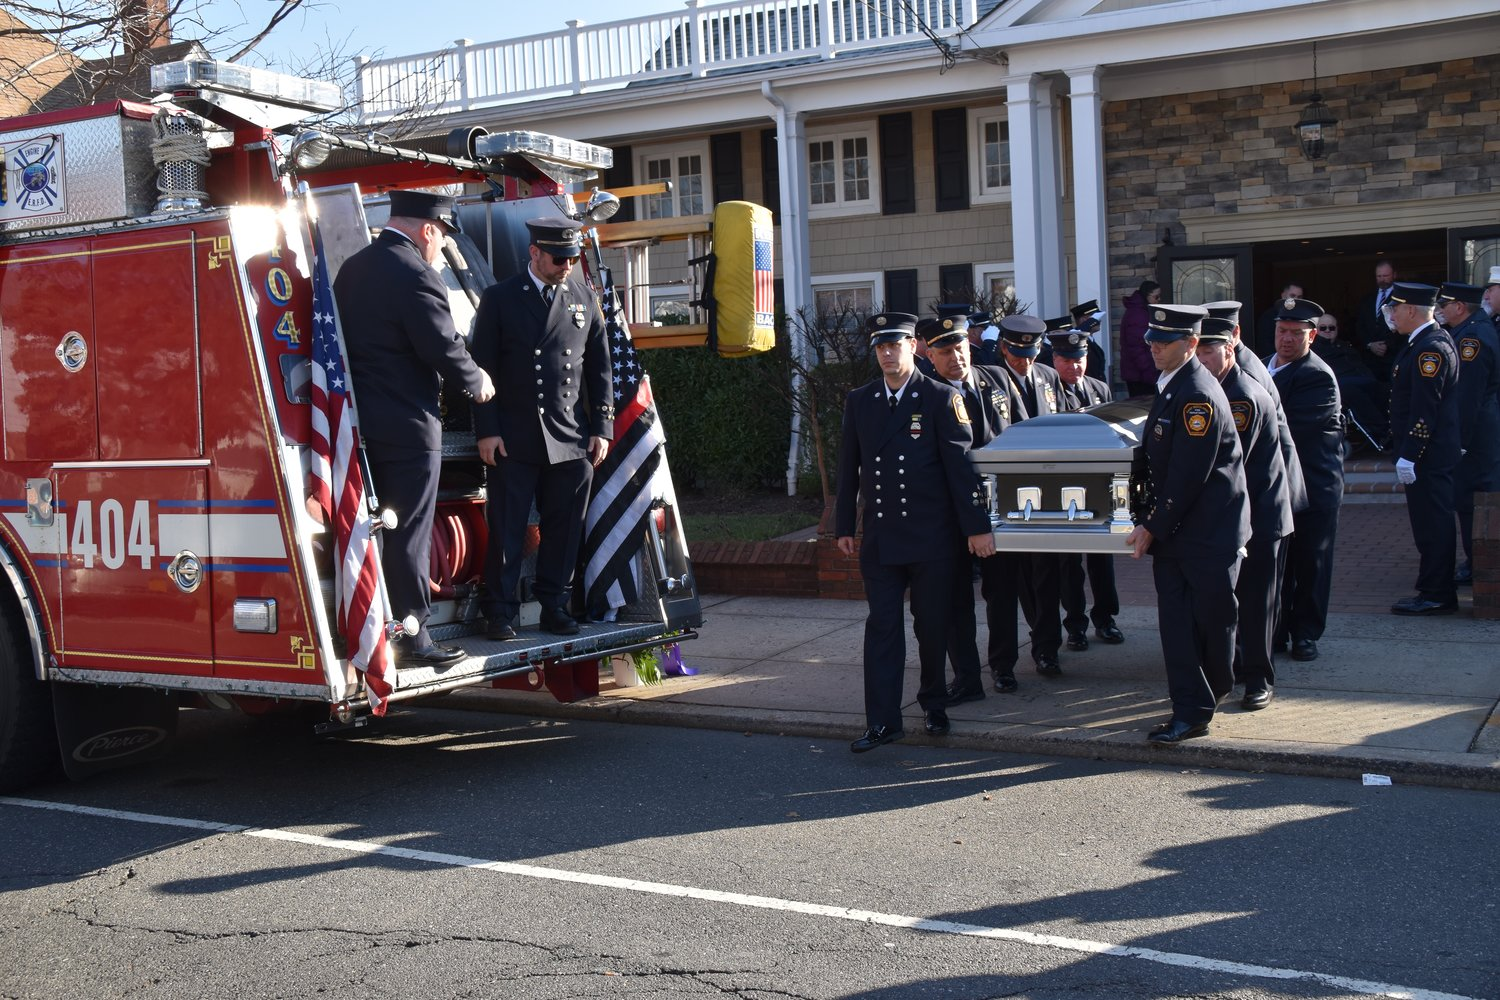 On Tuesday, dozens of firefighters attended the funeral service of former East Rockaway Fire Chief Gene Torborg at Perry Funeral Home.